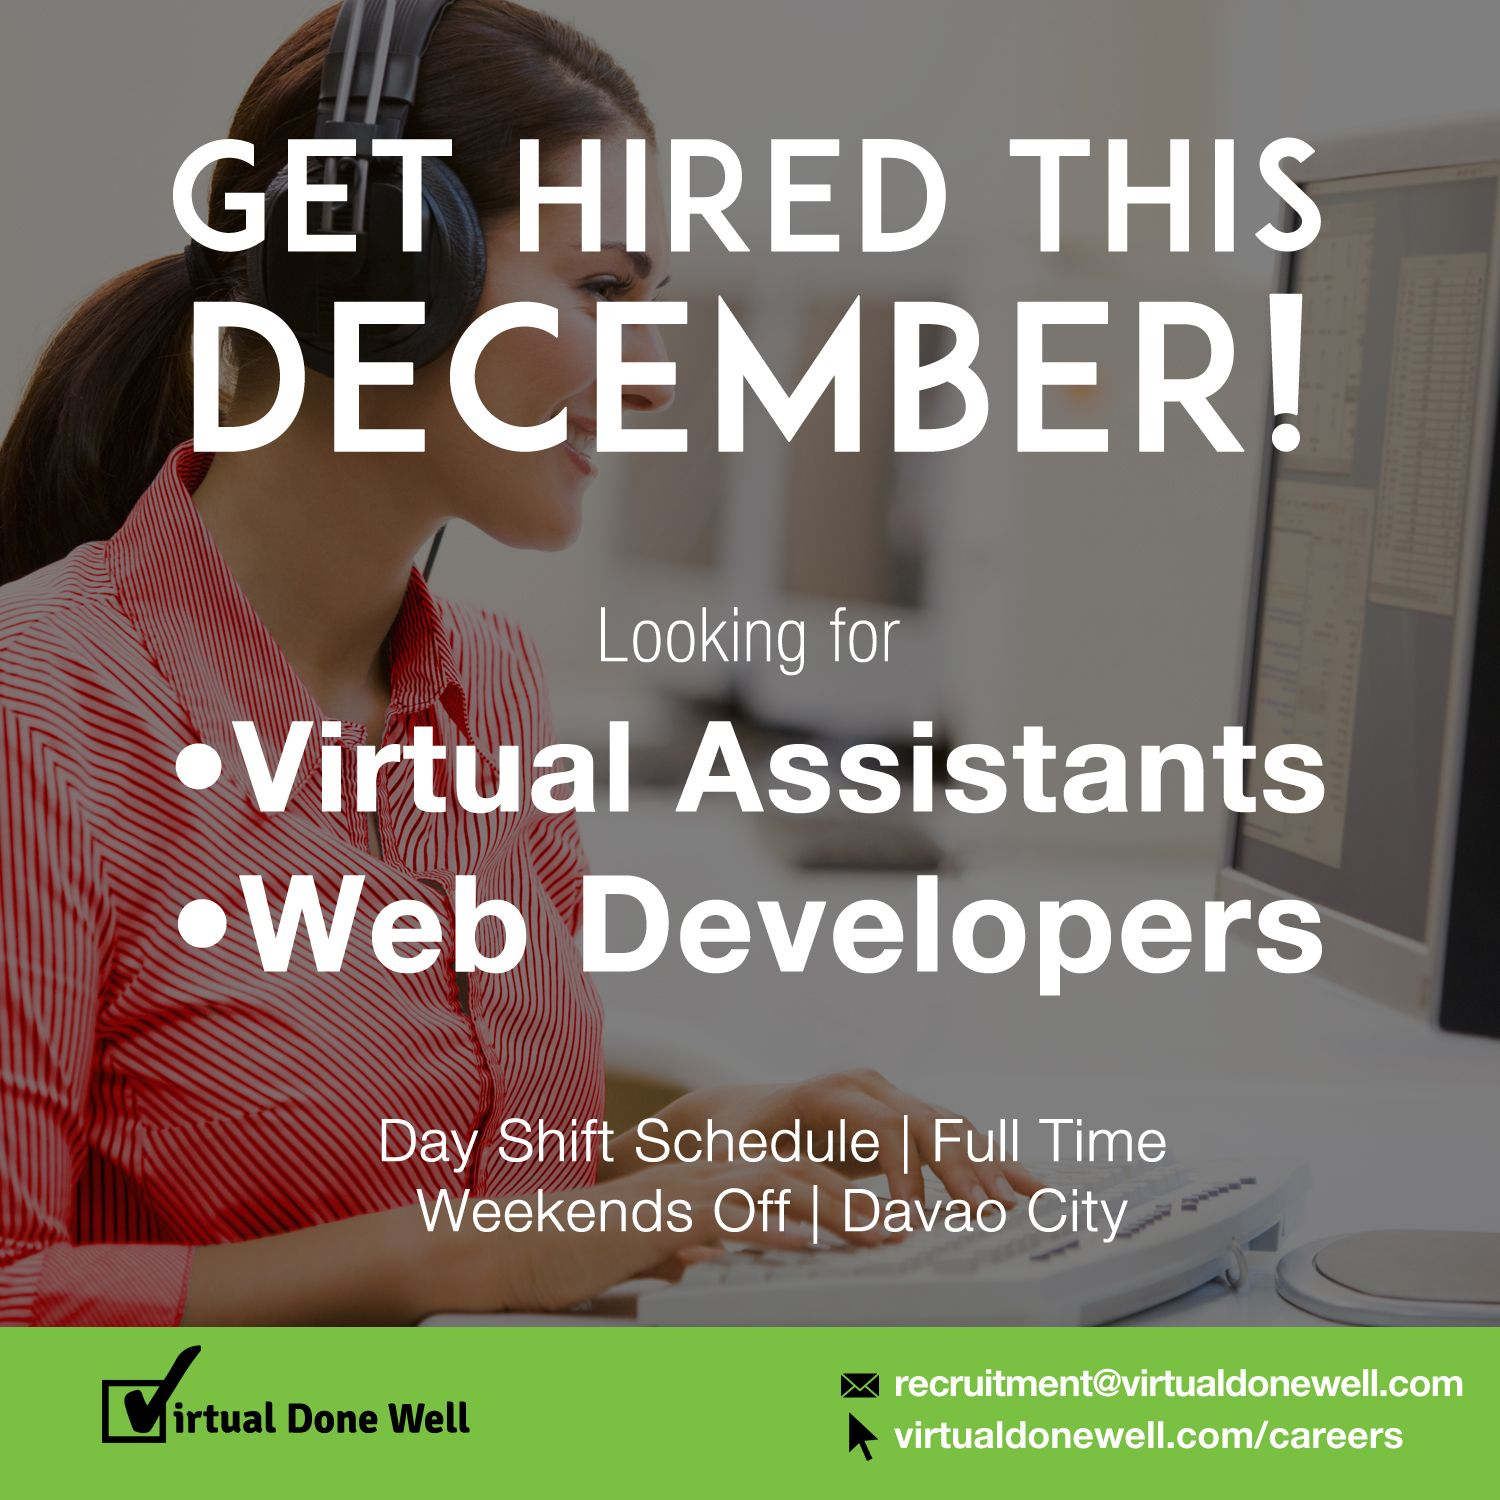 Apply for a job at virtual assistant how to apply